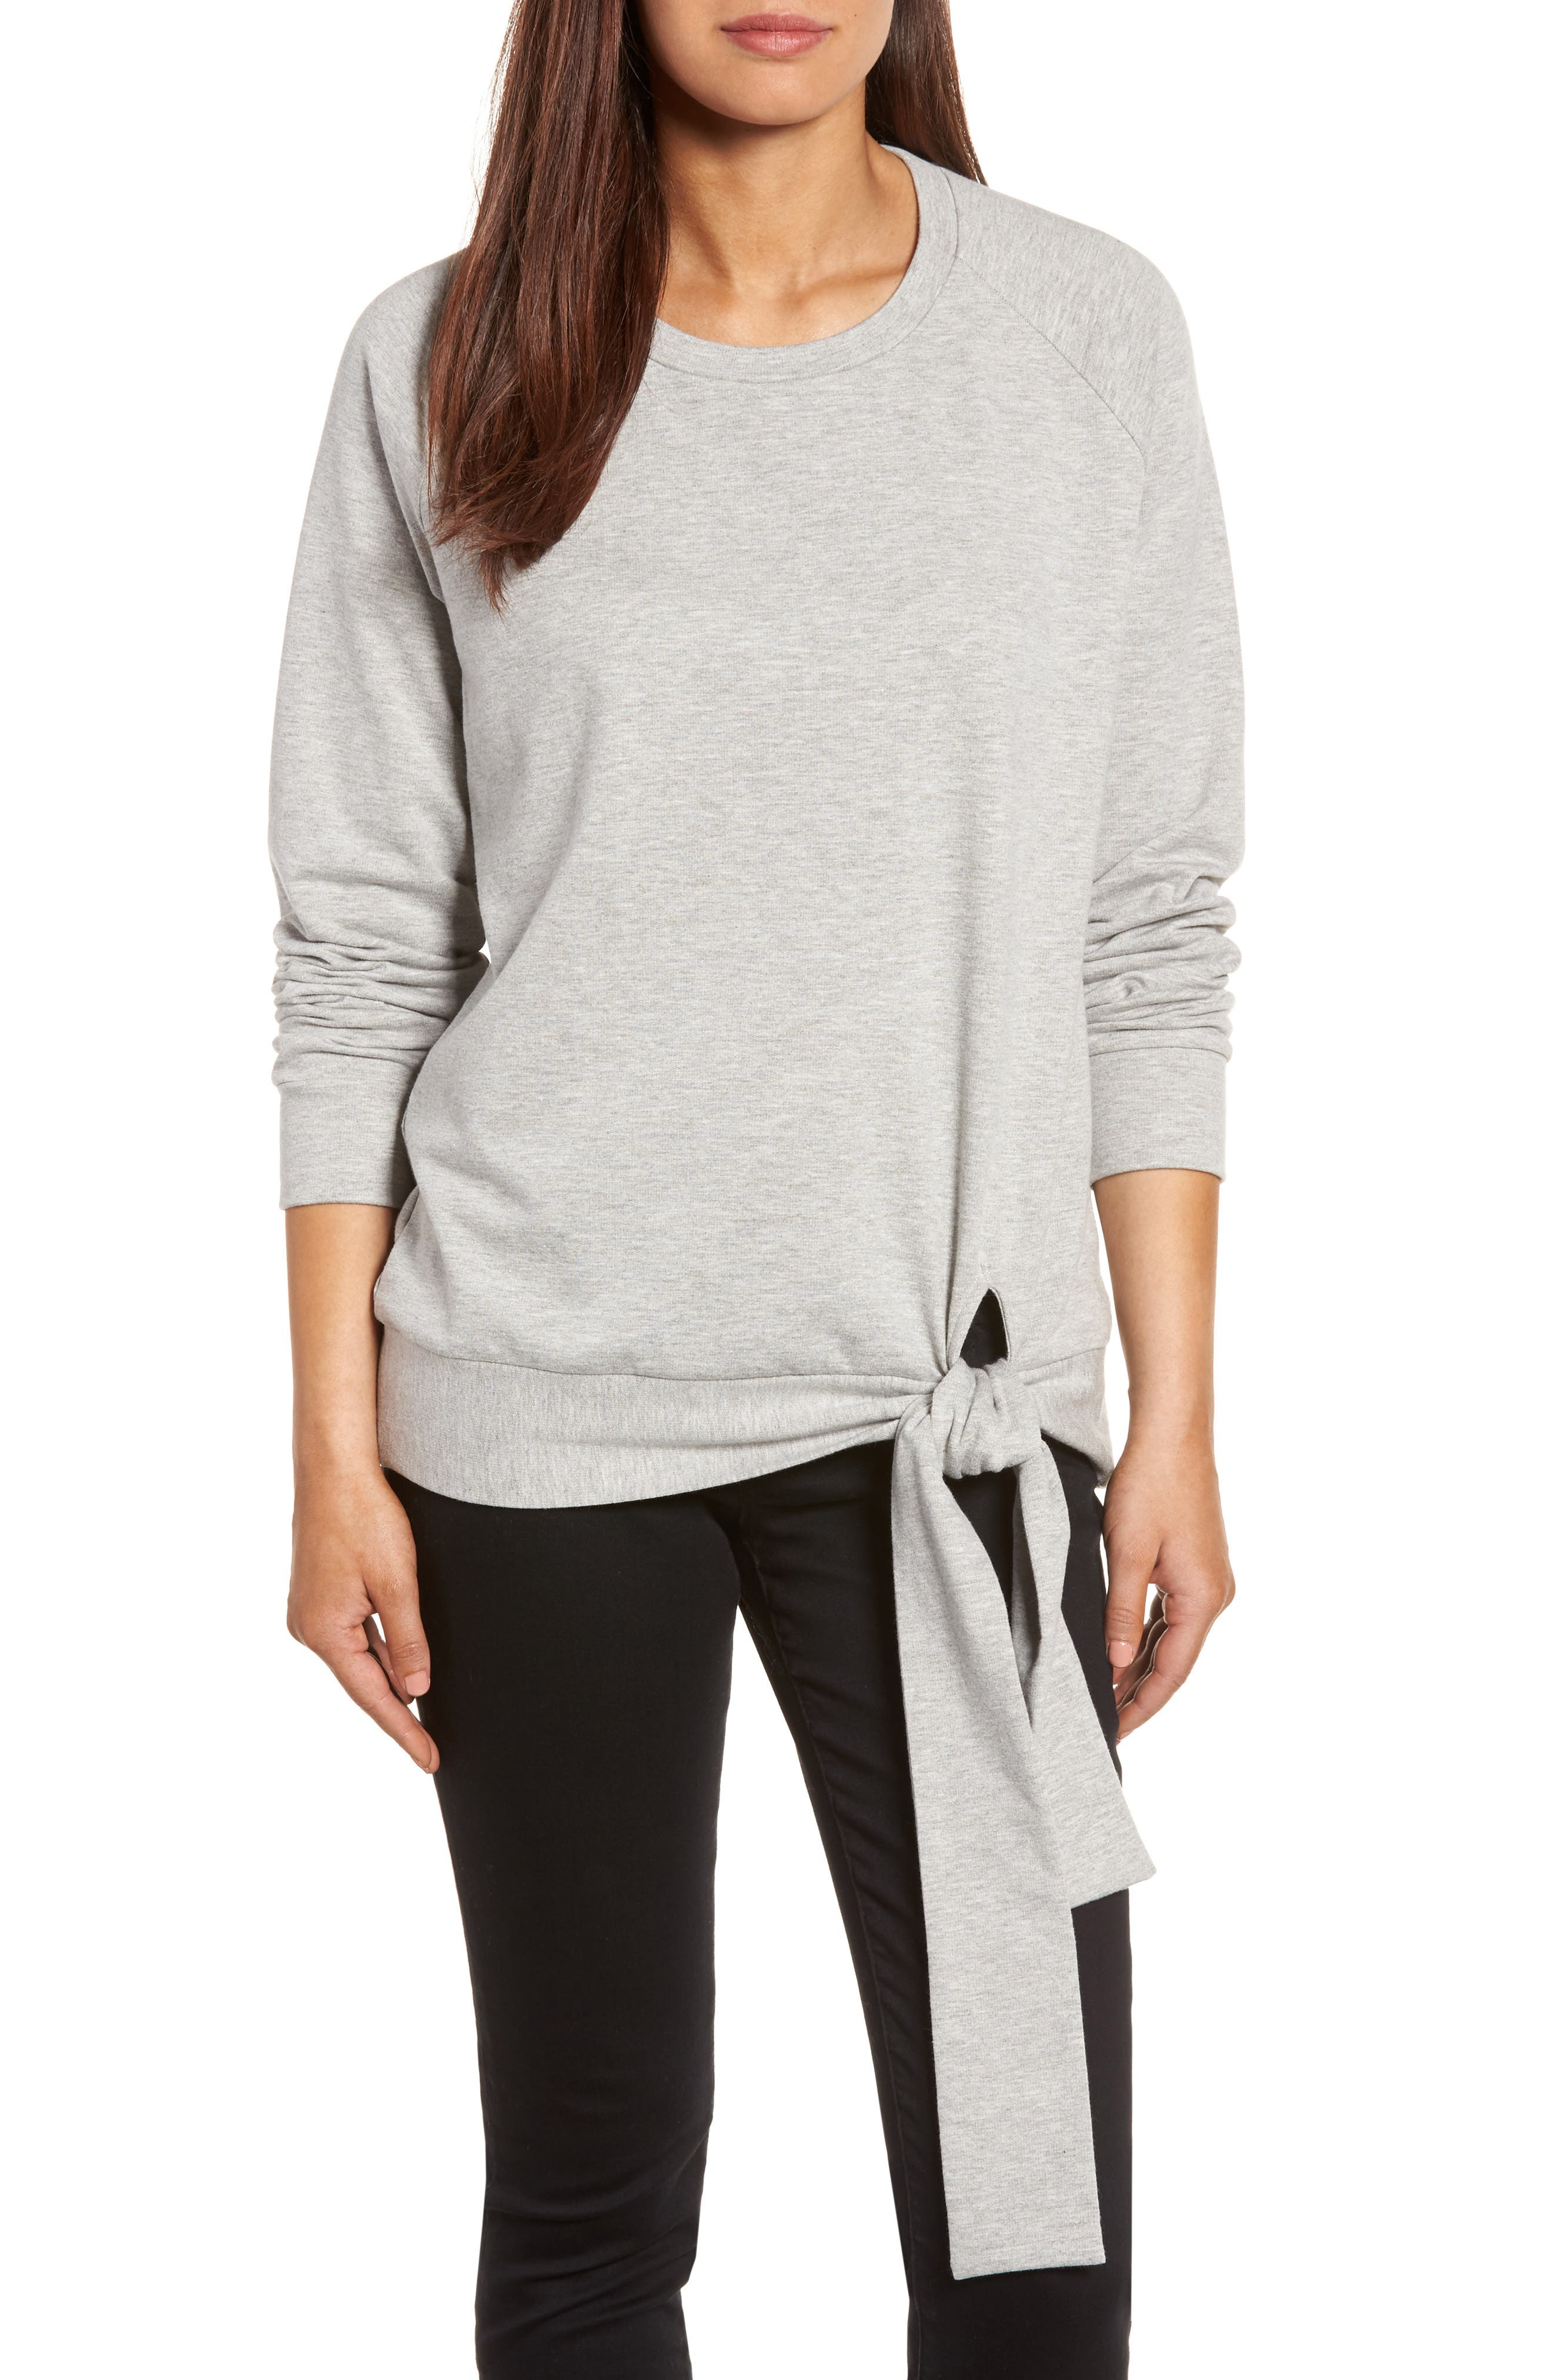 Alternate Image 1 Selected - Caslon® Tie Knot Sweatshirt (Regular & Petite)